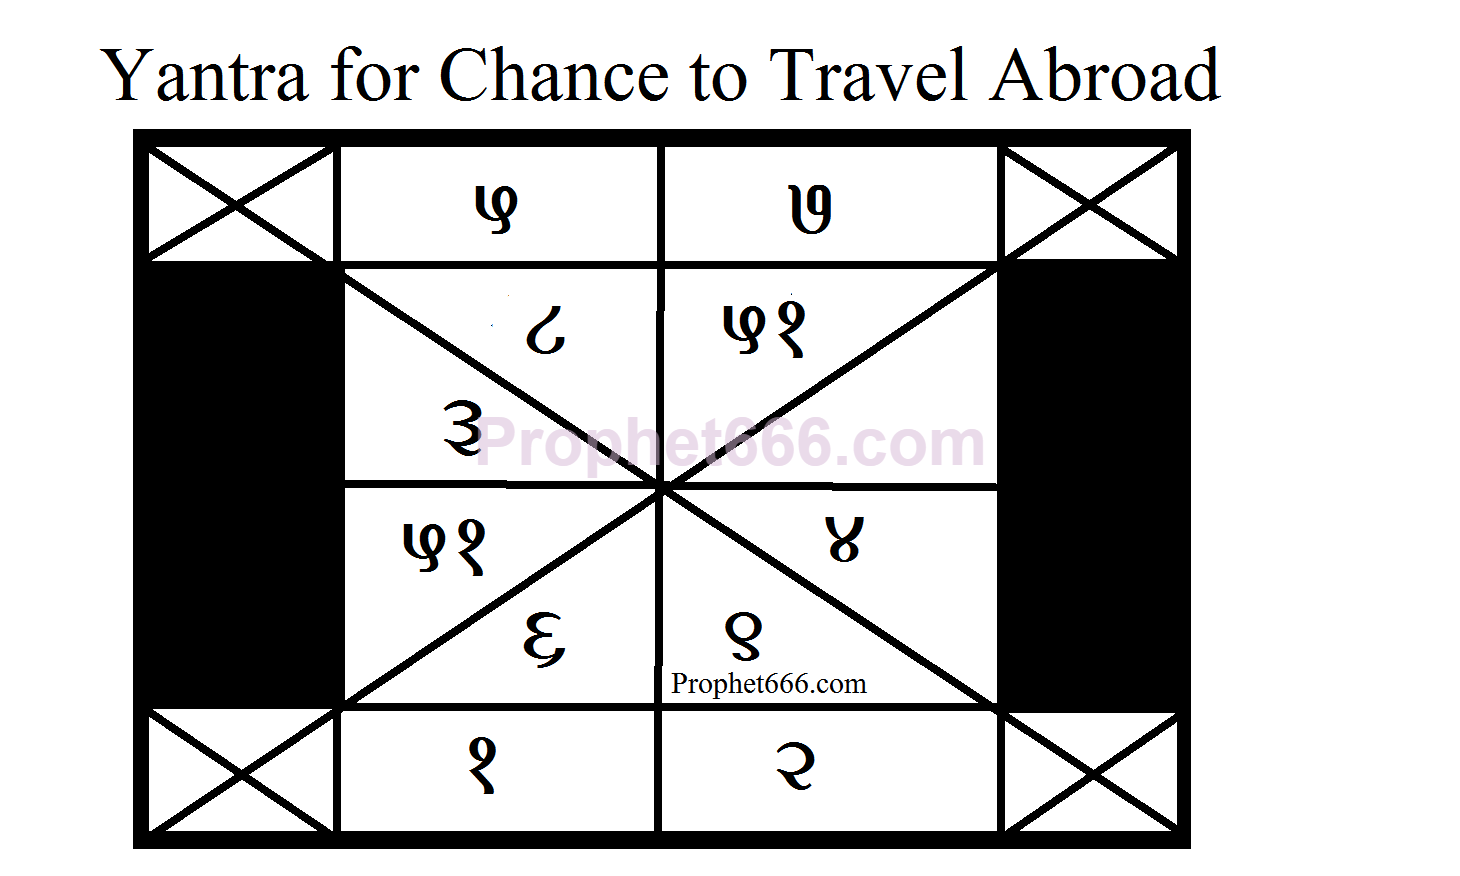 Yantra for Chance to Travel Abroad